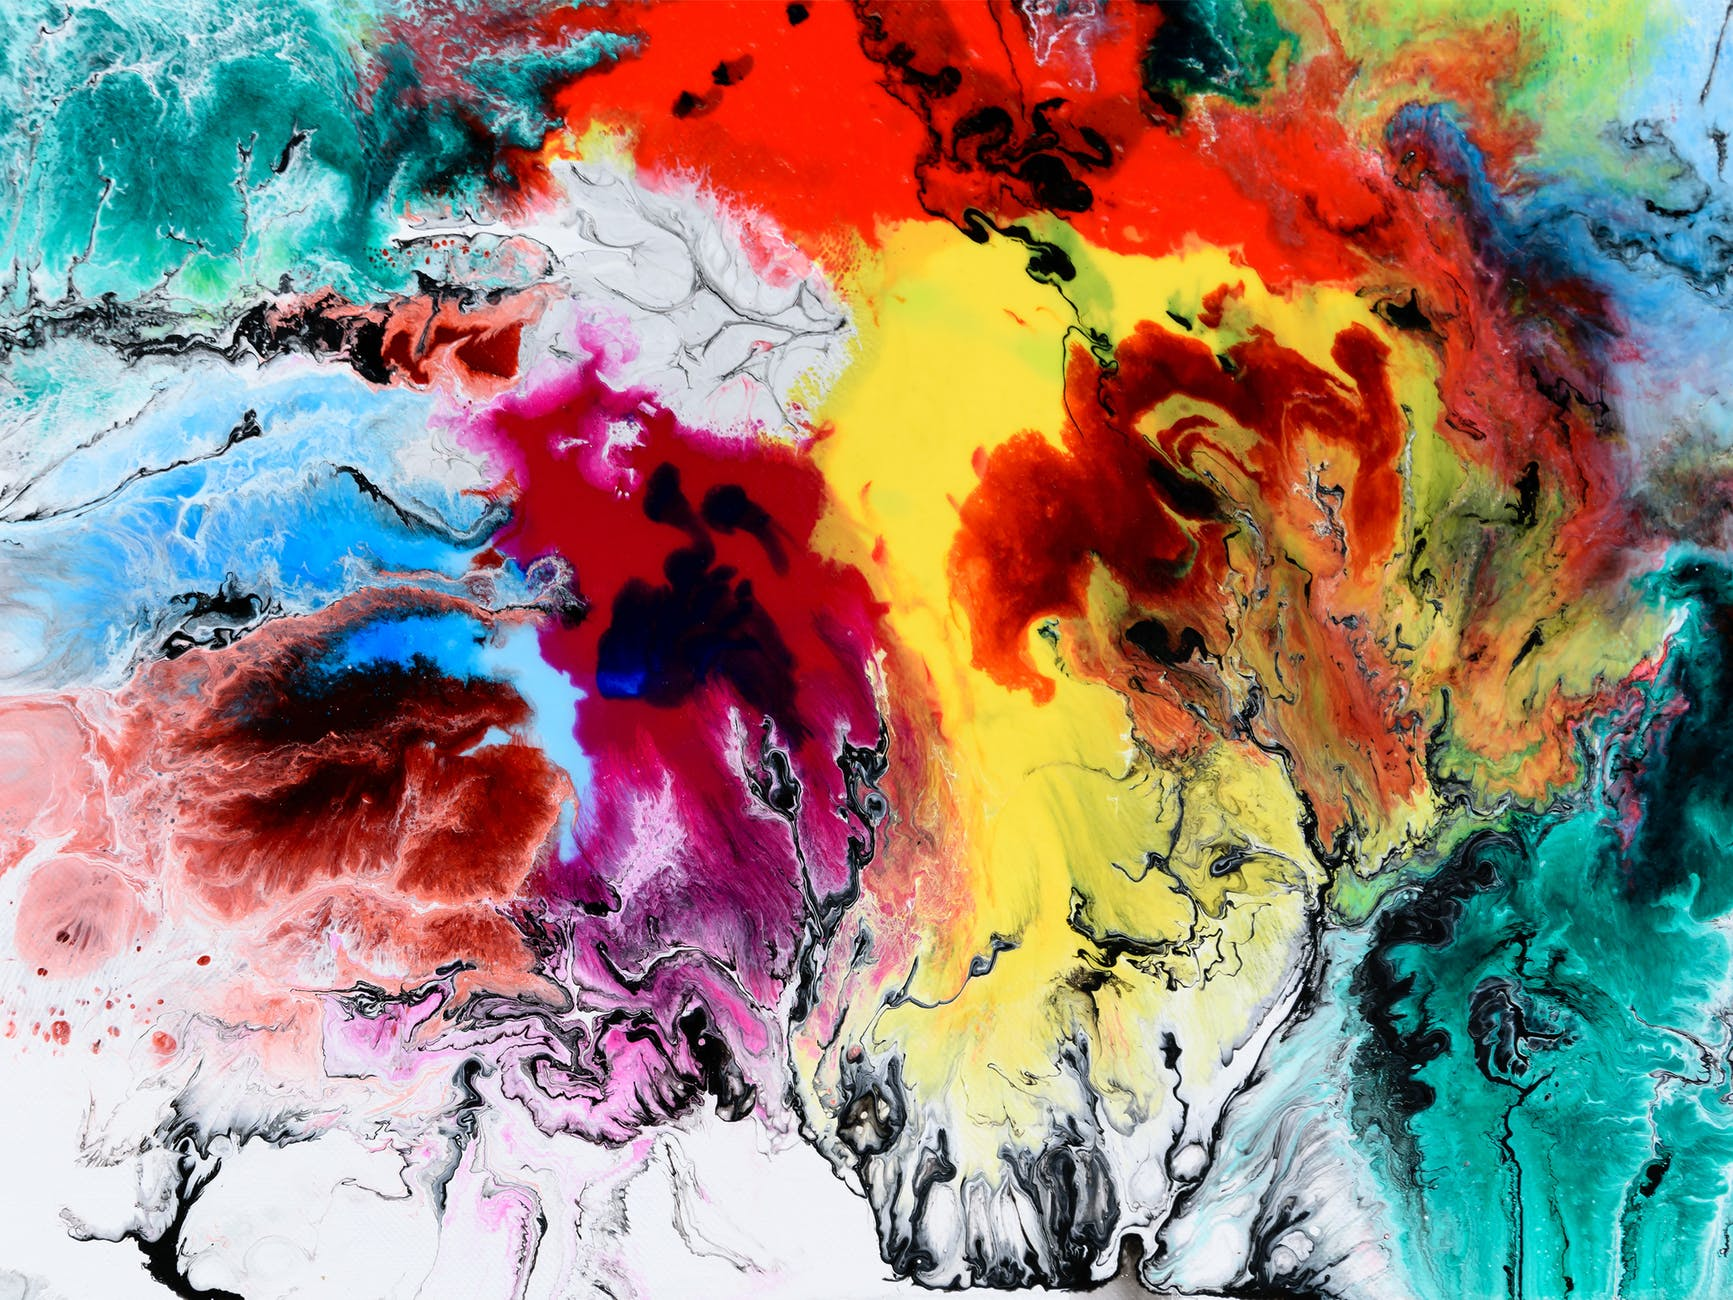 THE PSYCHOLOGY OF COLOUR: HOW BIG BRANDS PAINT THE PERFECT PICTURE